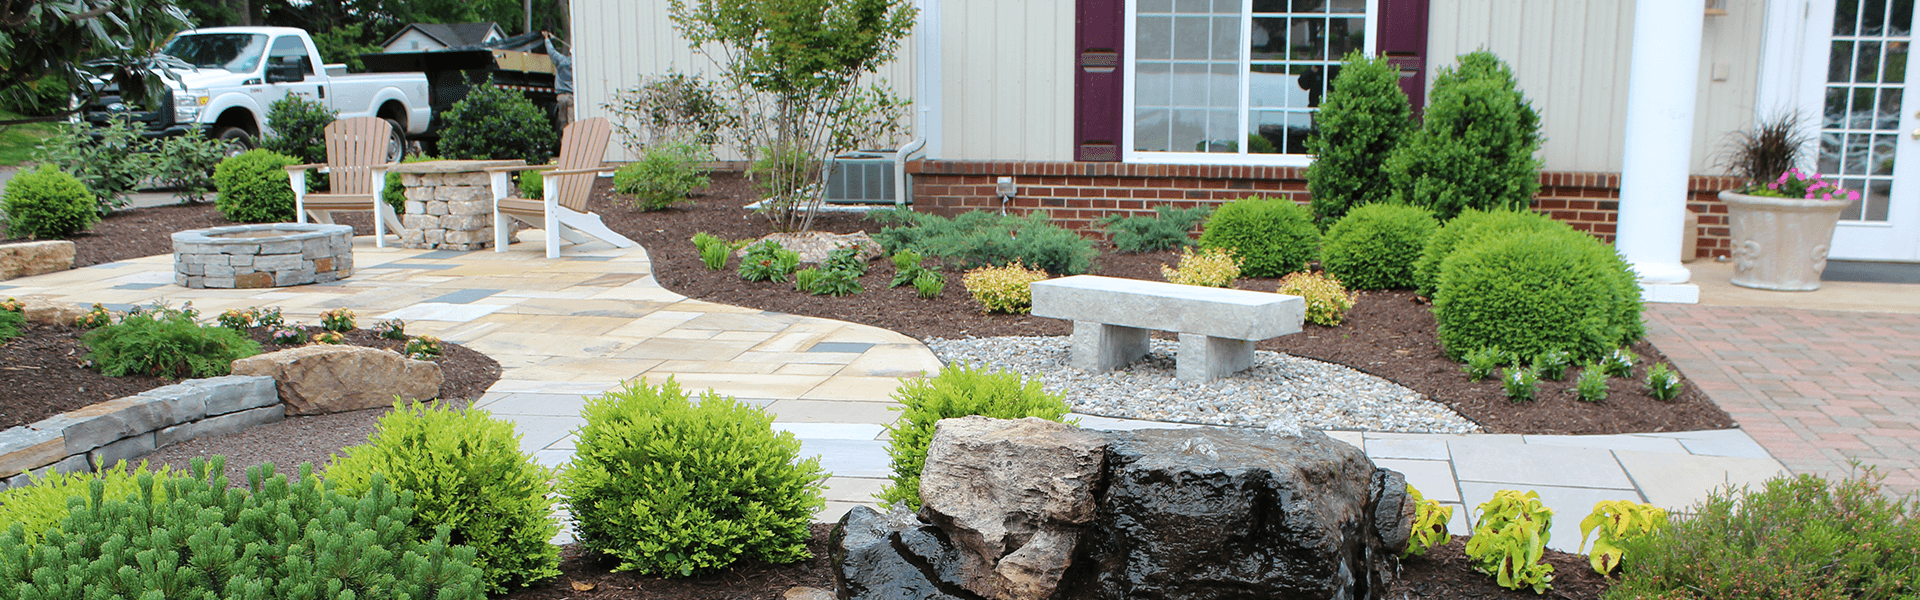 Brighten Your Space with Hardscape & Landscape from Lee Highway Nursery